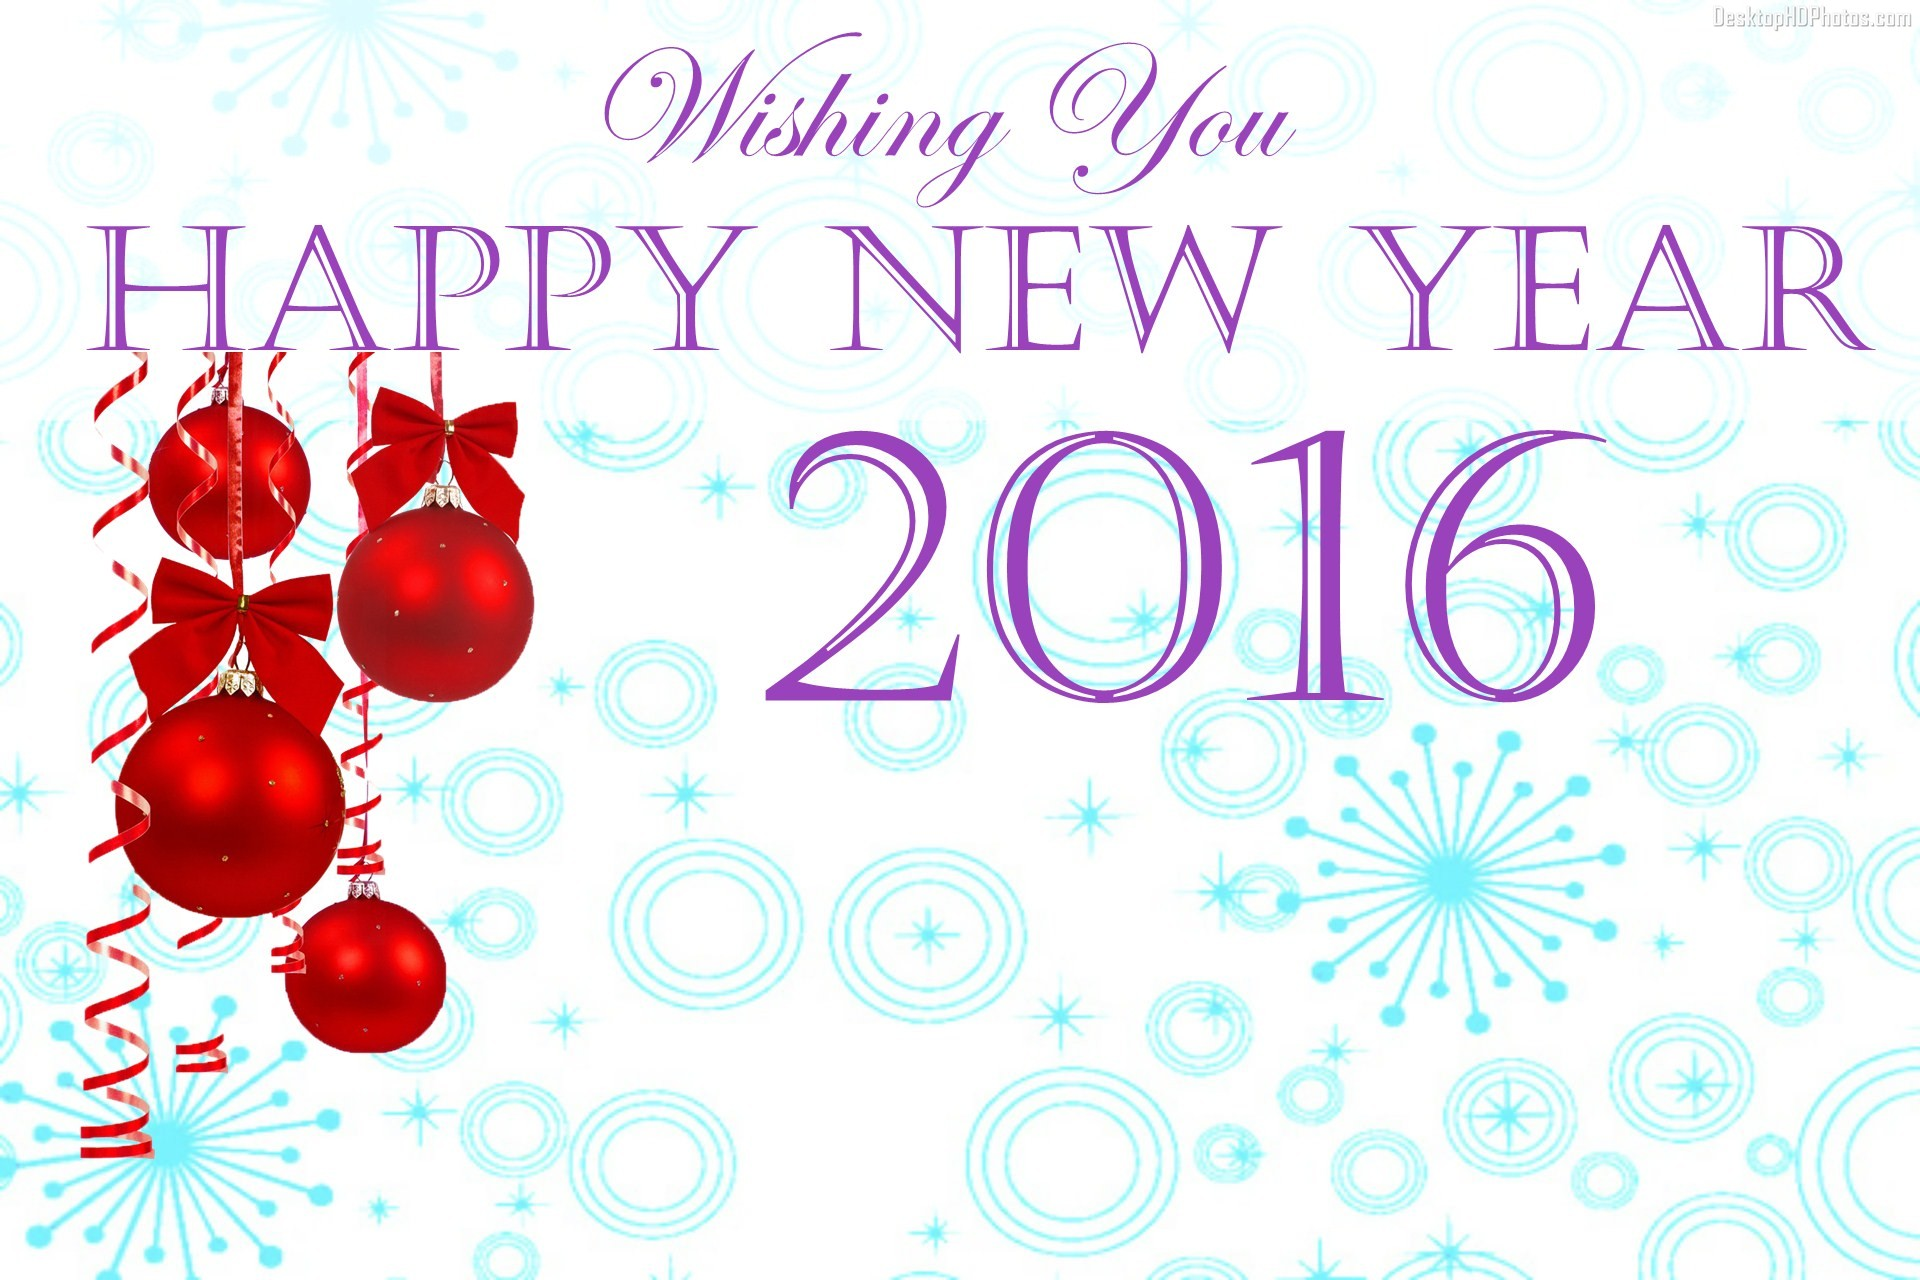 Happy New Year 2016 Wallpapers Photography Click As Your Mod 1920x1280